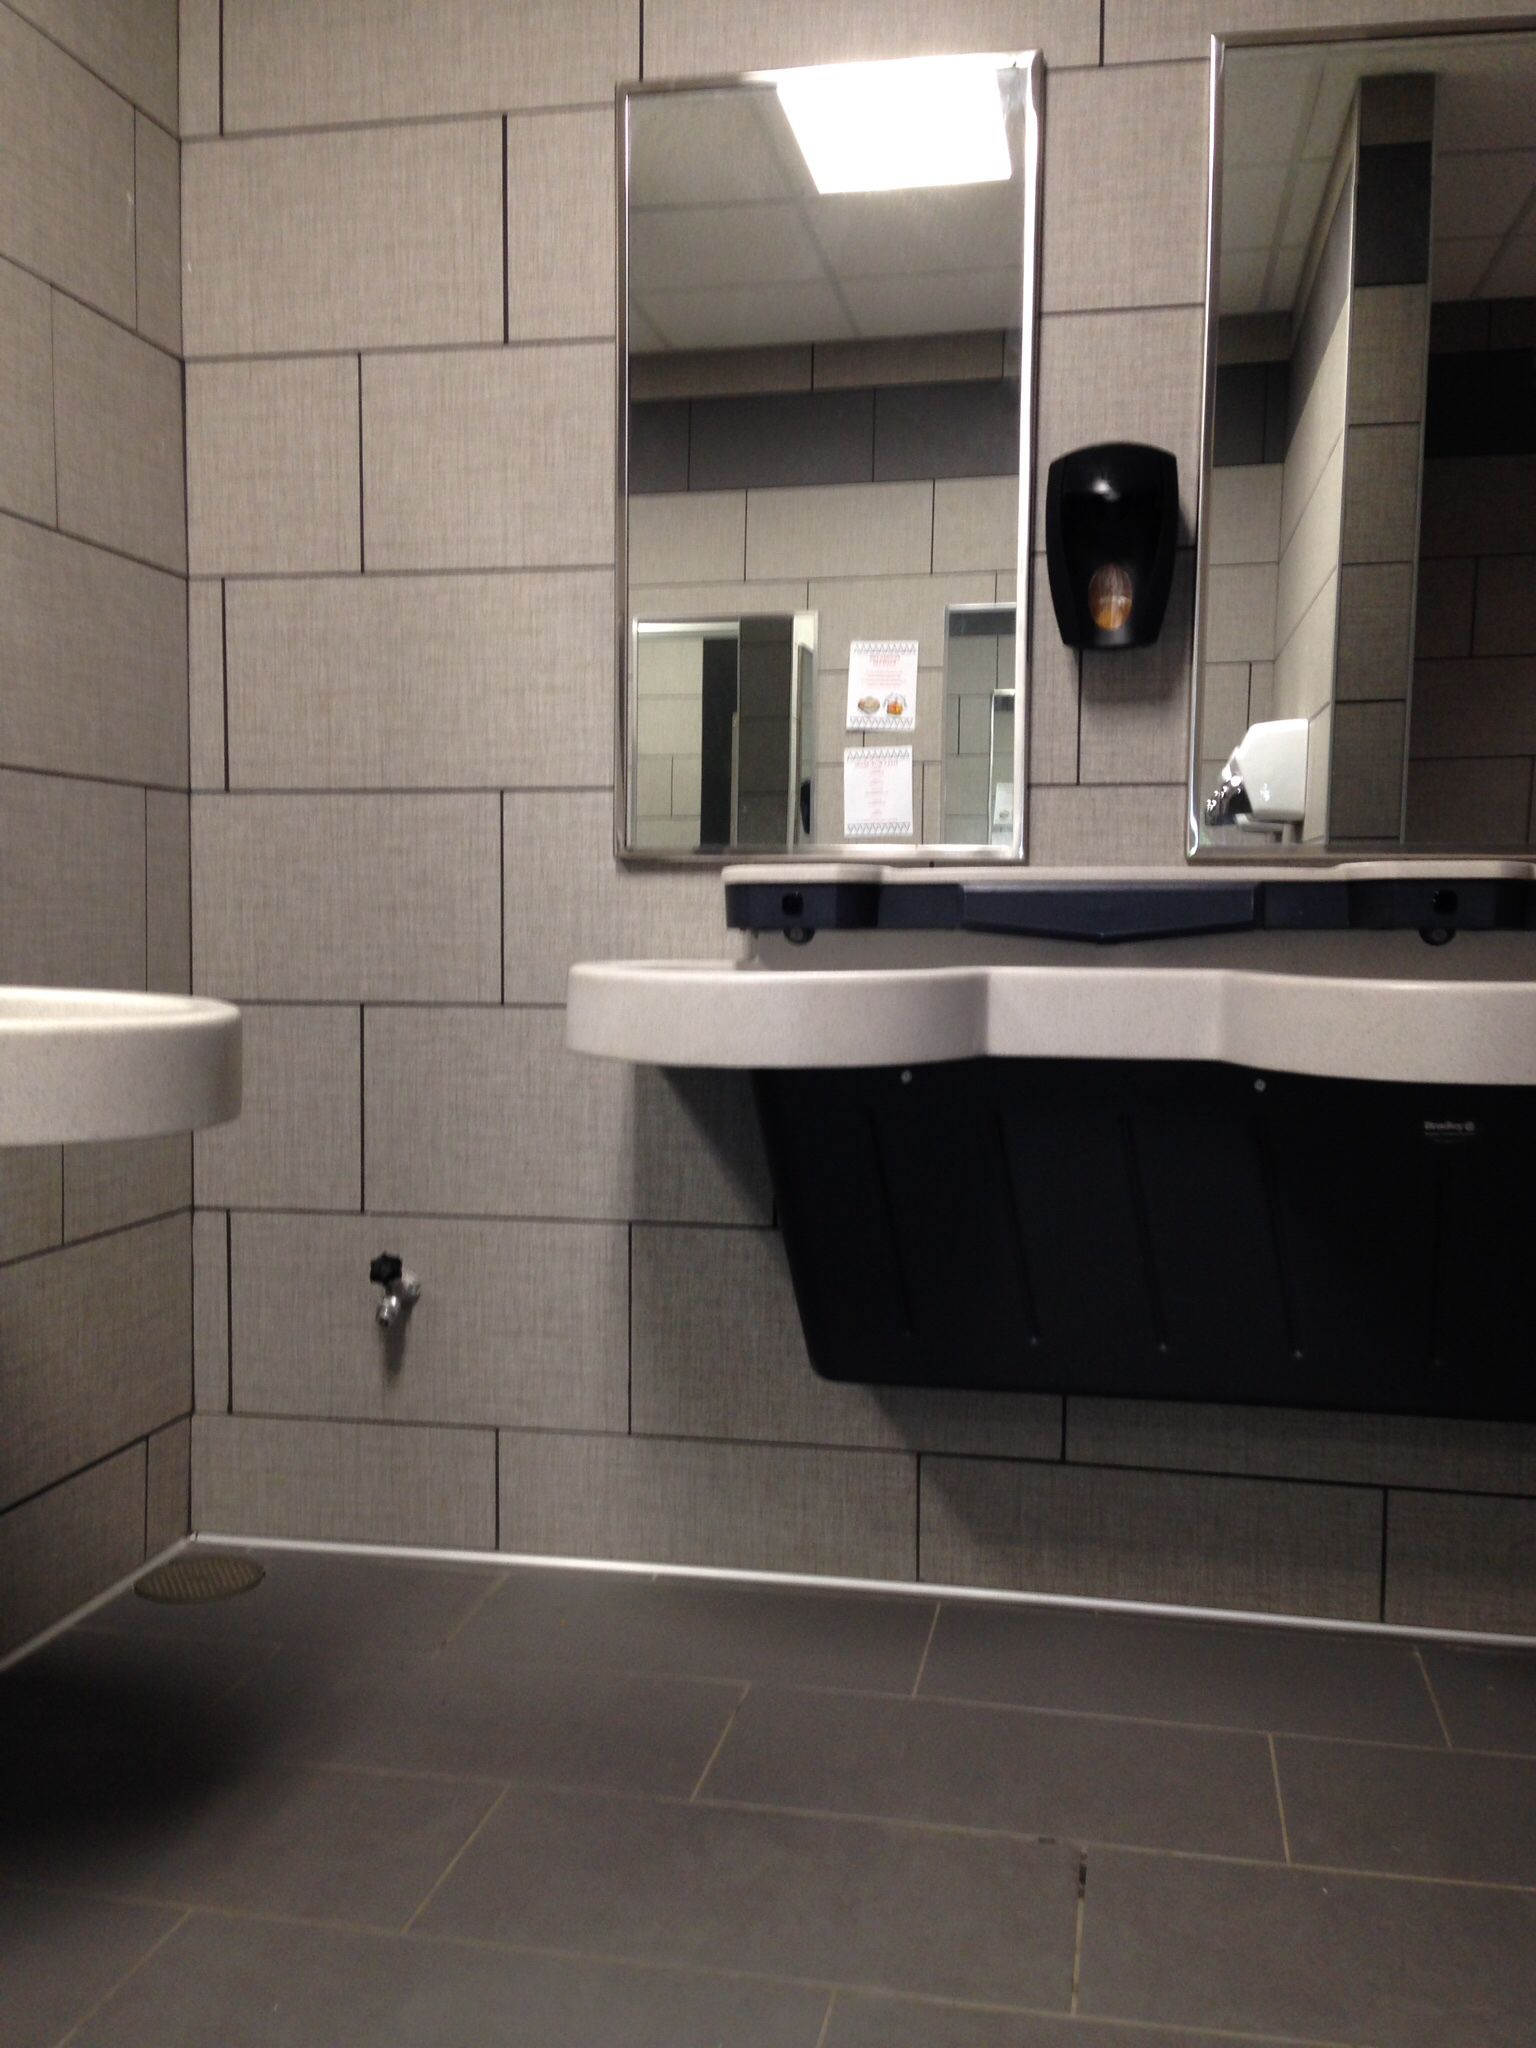 Daltile Exhibition Series Ex10 Fray 12x24 Walls With